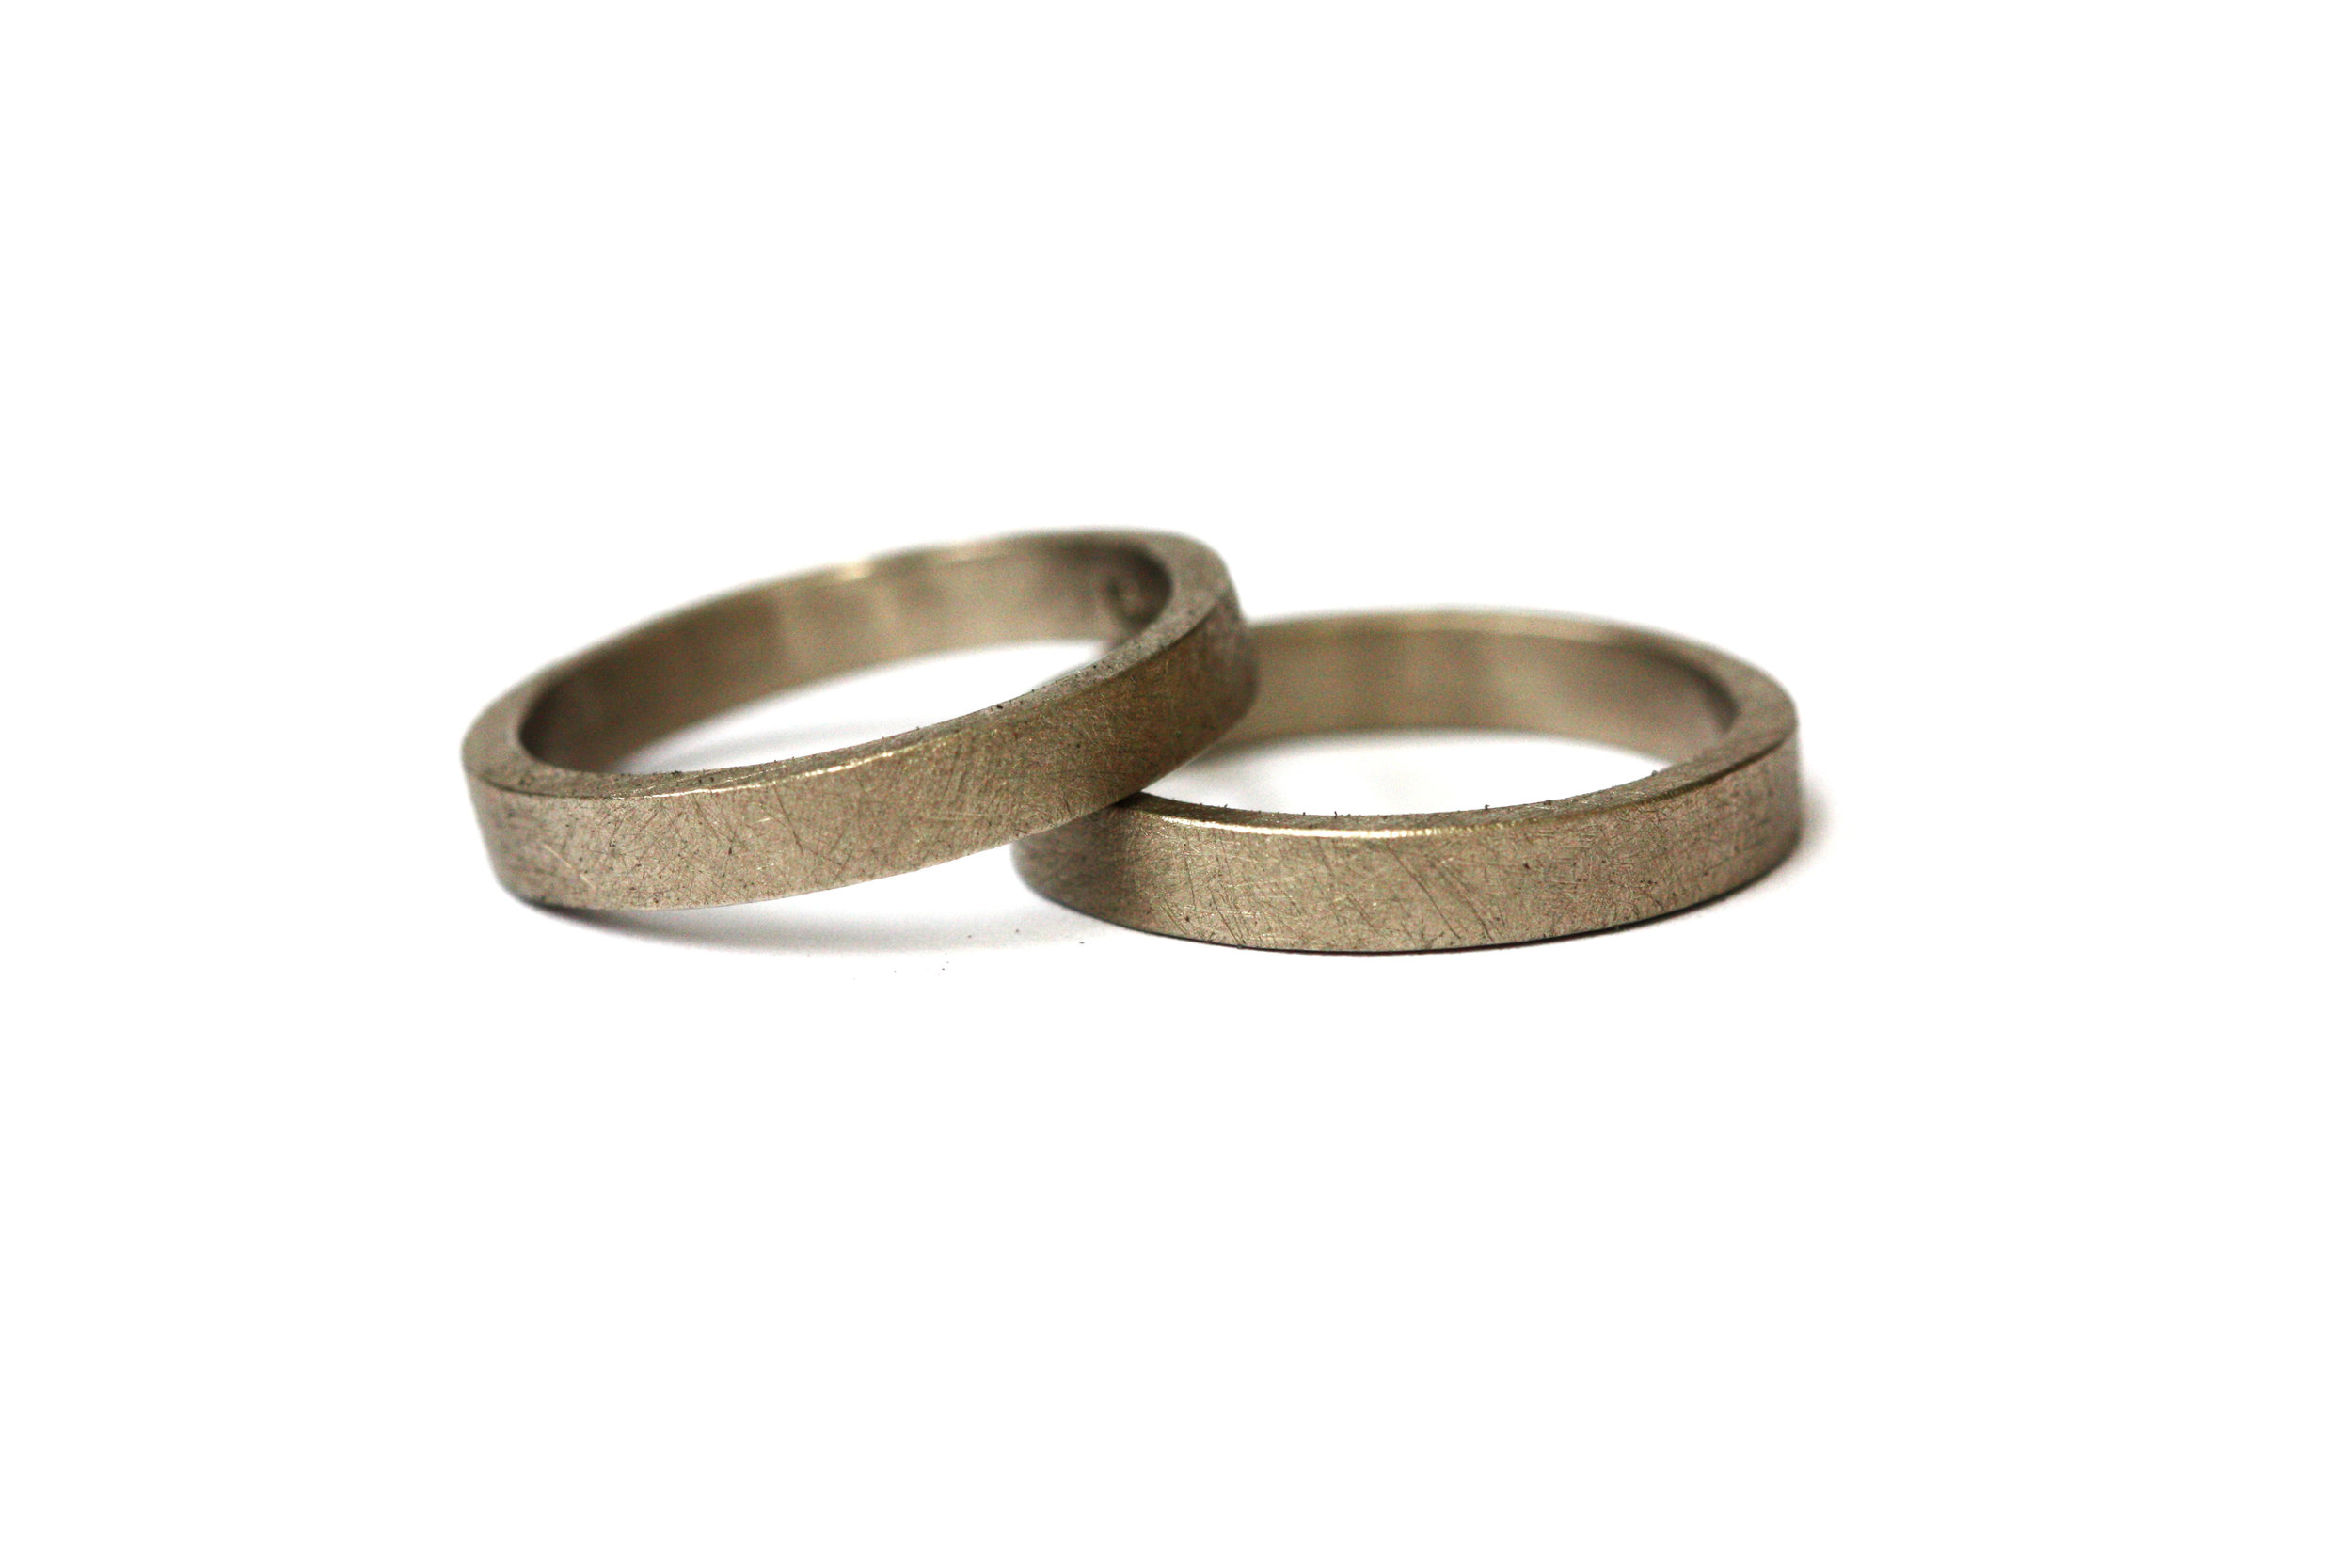 Wedding Rings  Made of 18ct white gold these rings have a dark grey tone giving a cooler tone of gold and an alternative to platinum or palladium.